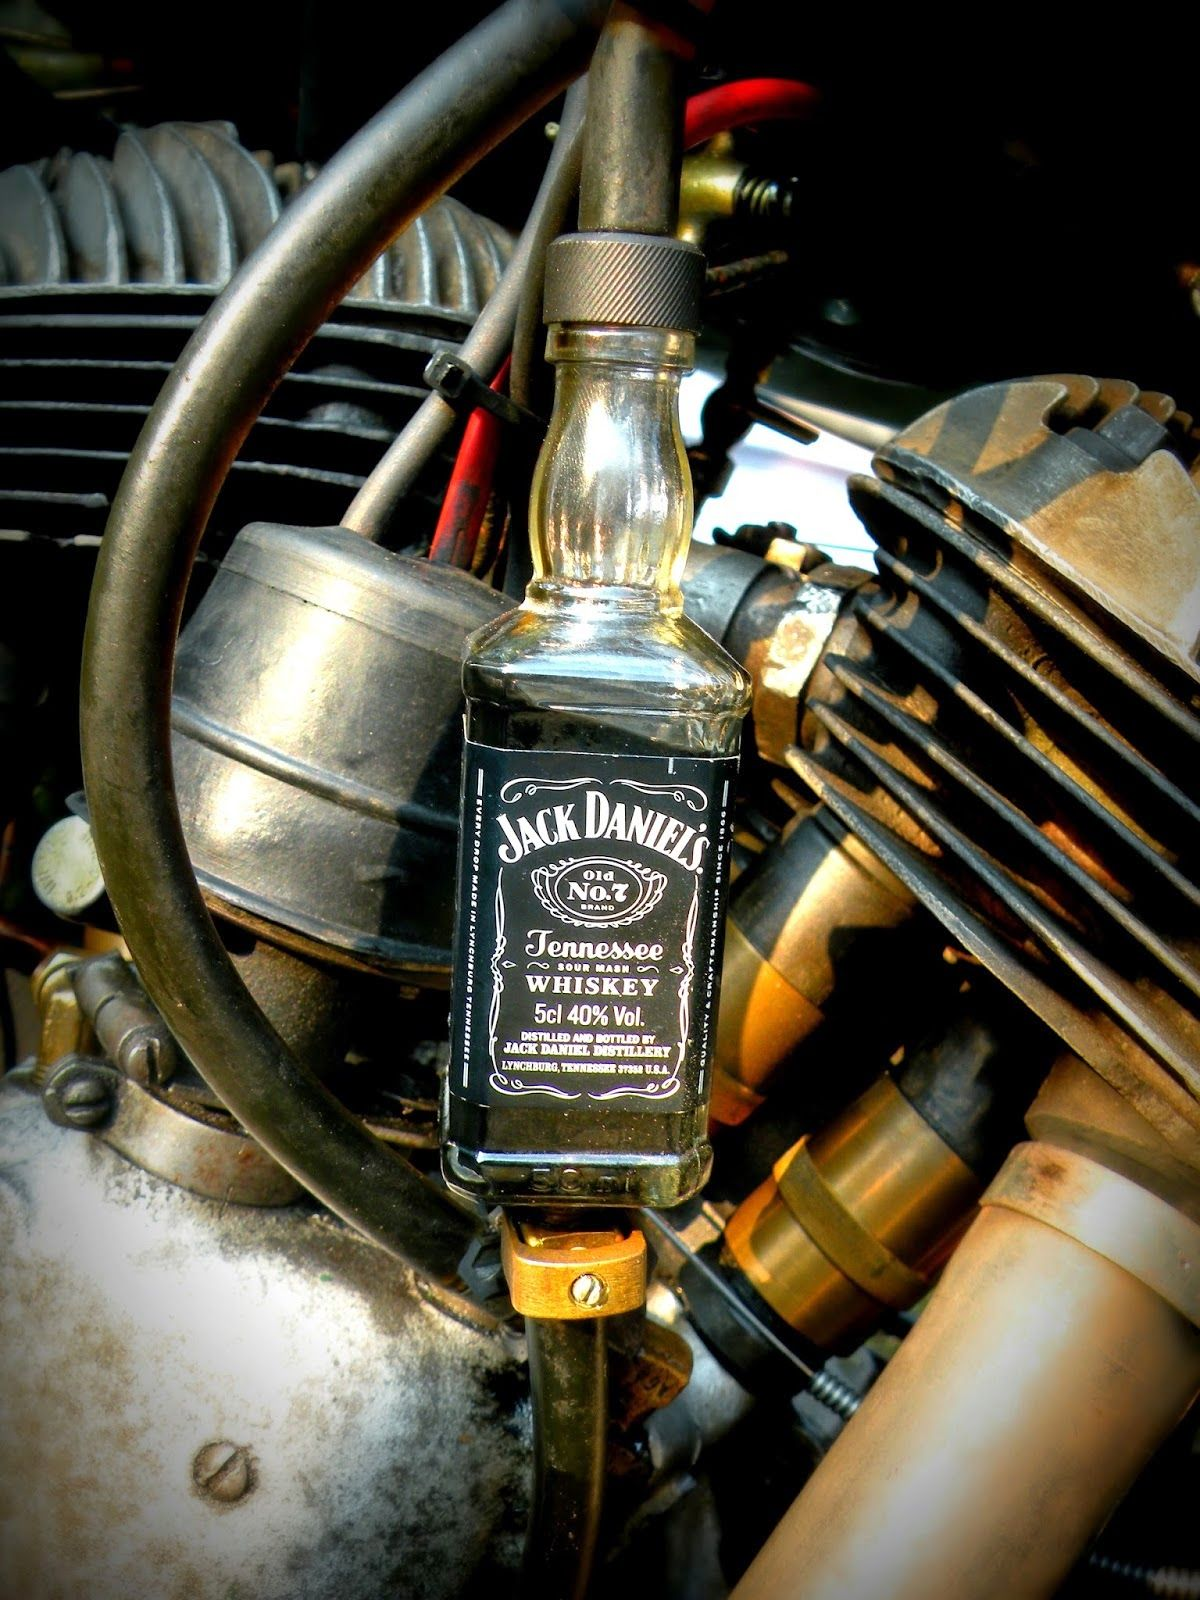 jack daniels oil filter | fuel filter jack daniels motorcycle oil filter | motorcycle  fuel filter, custom motorcycle part was crafted by bastybikes art  if